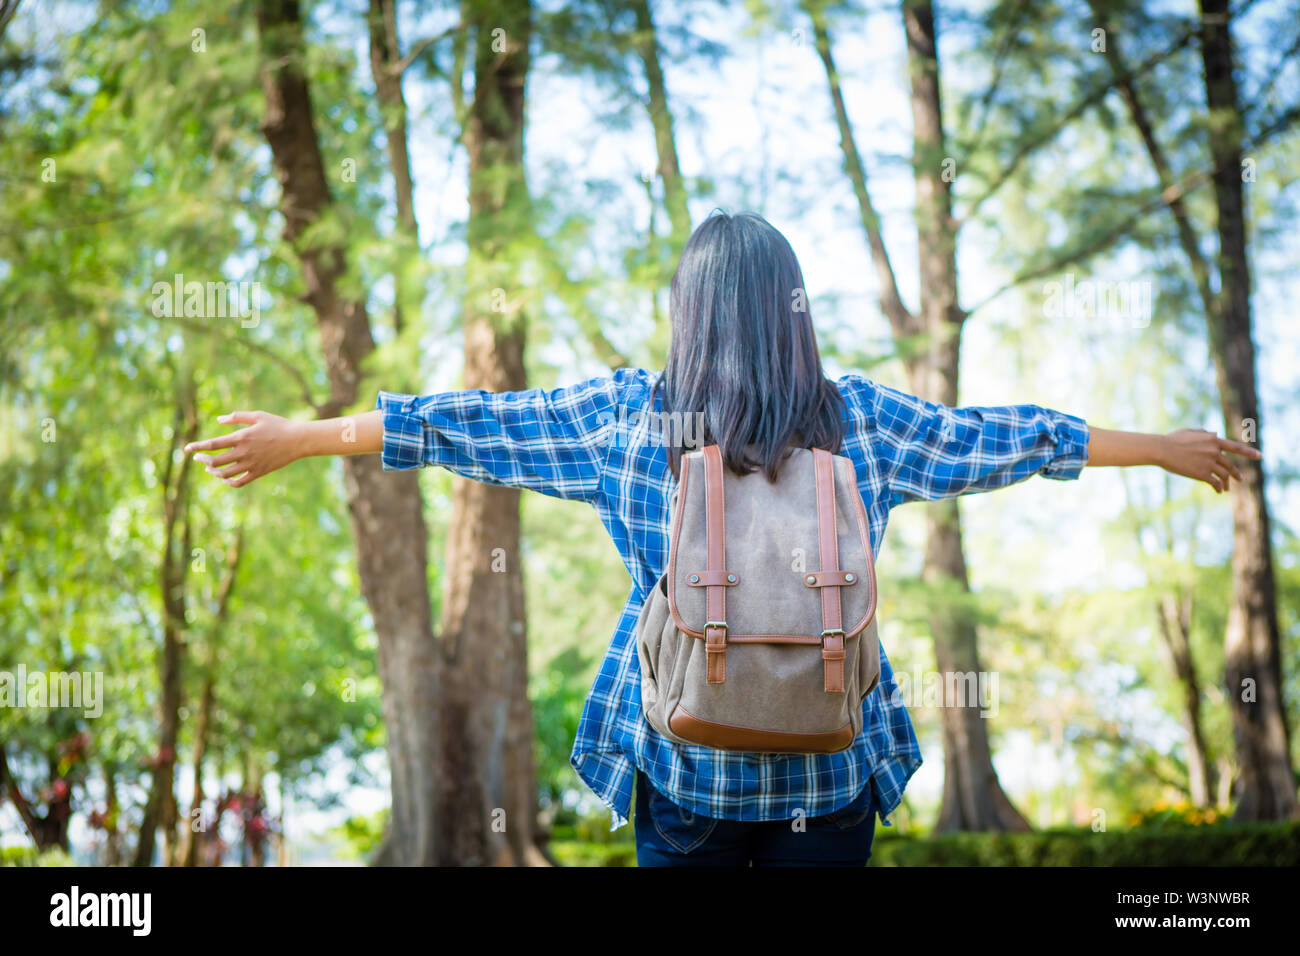 Young woman arms raised enjoying the fresh air in green forest. - Stock Image